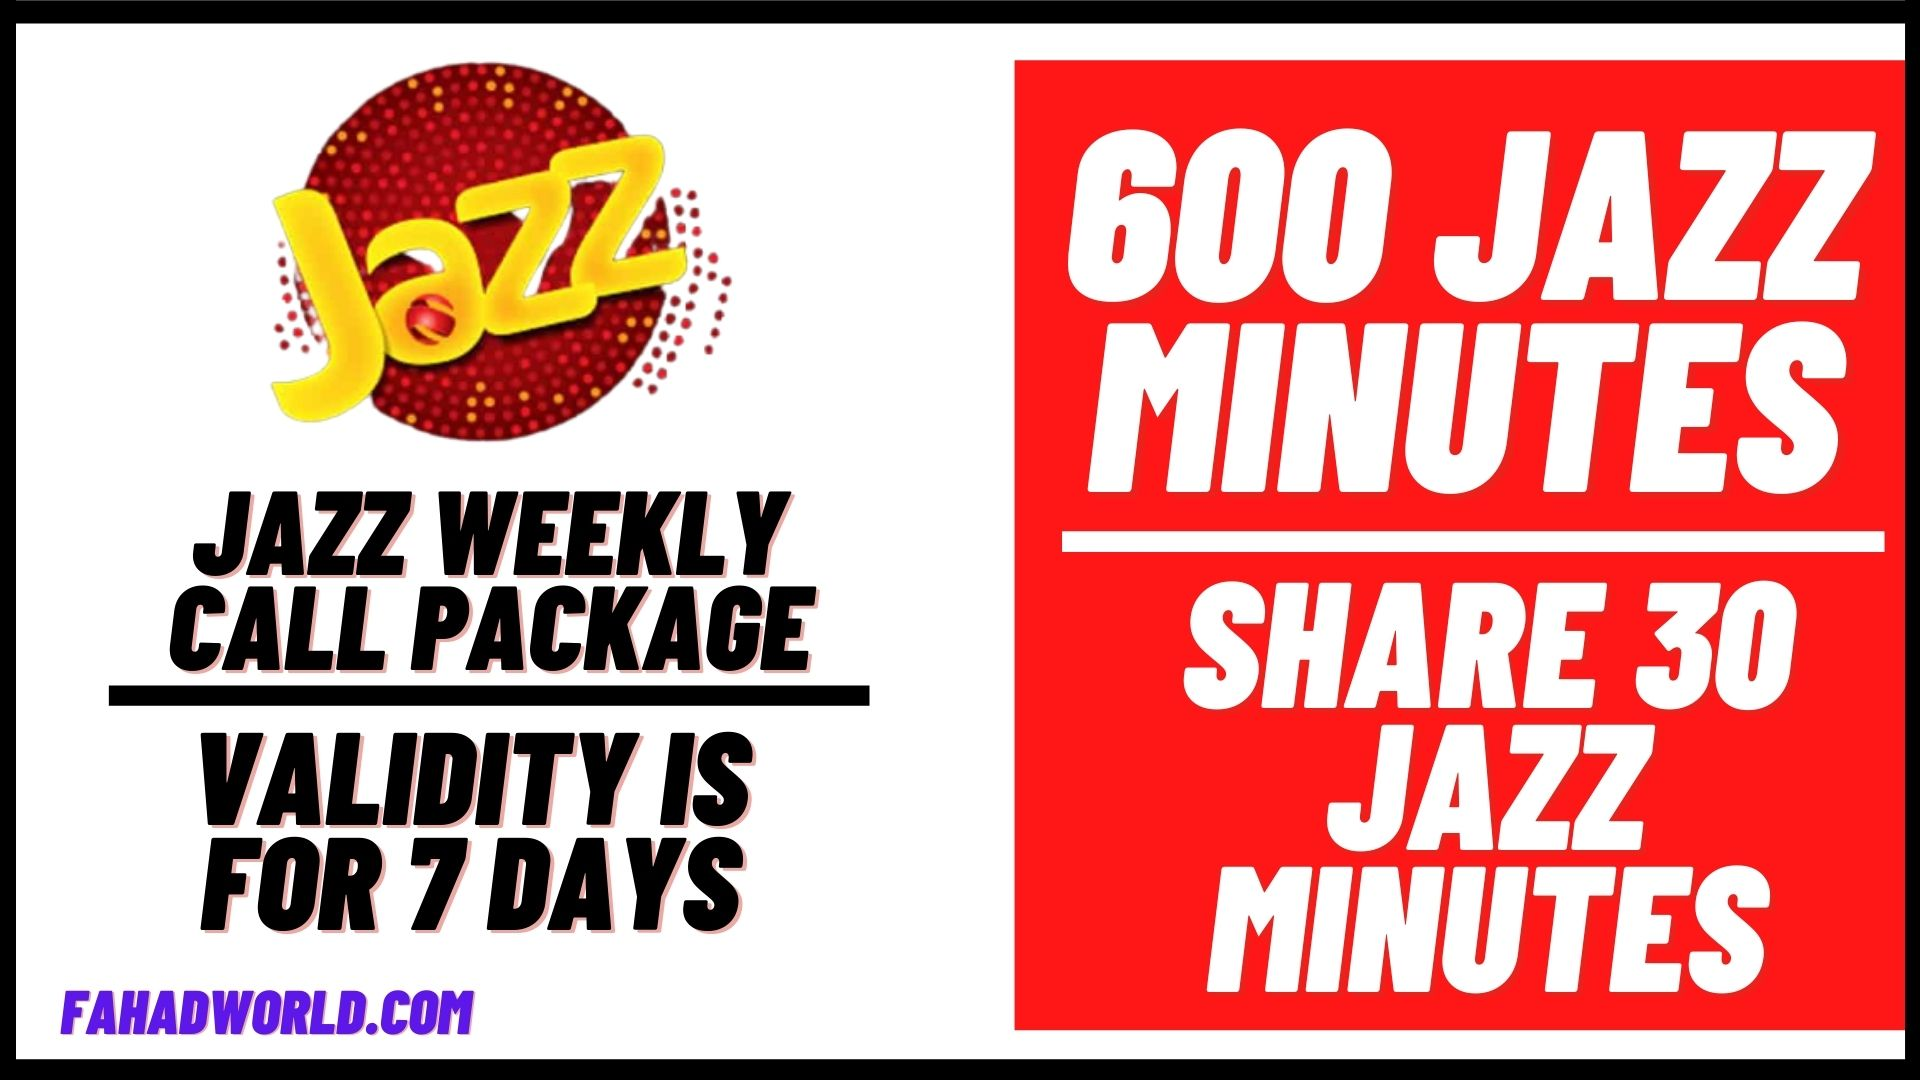 jazz weekly call package